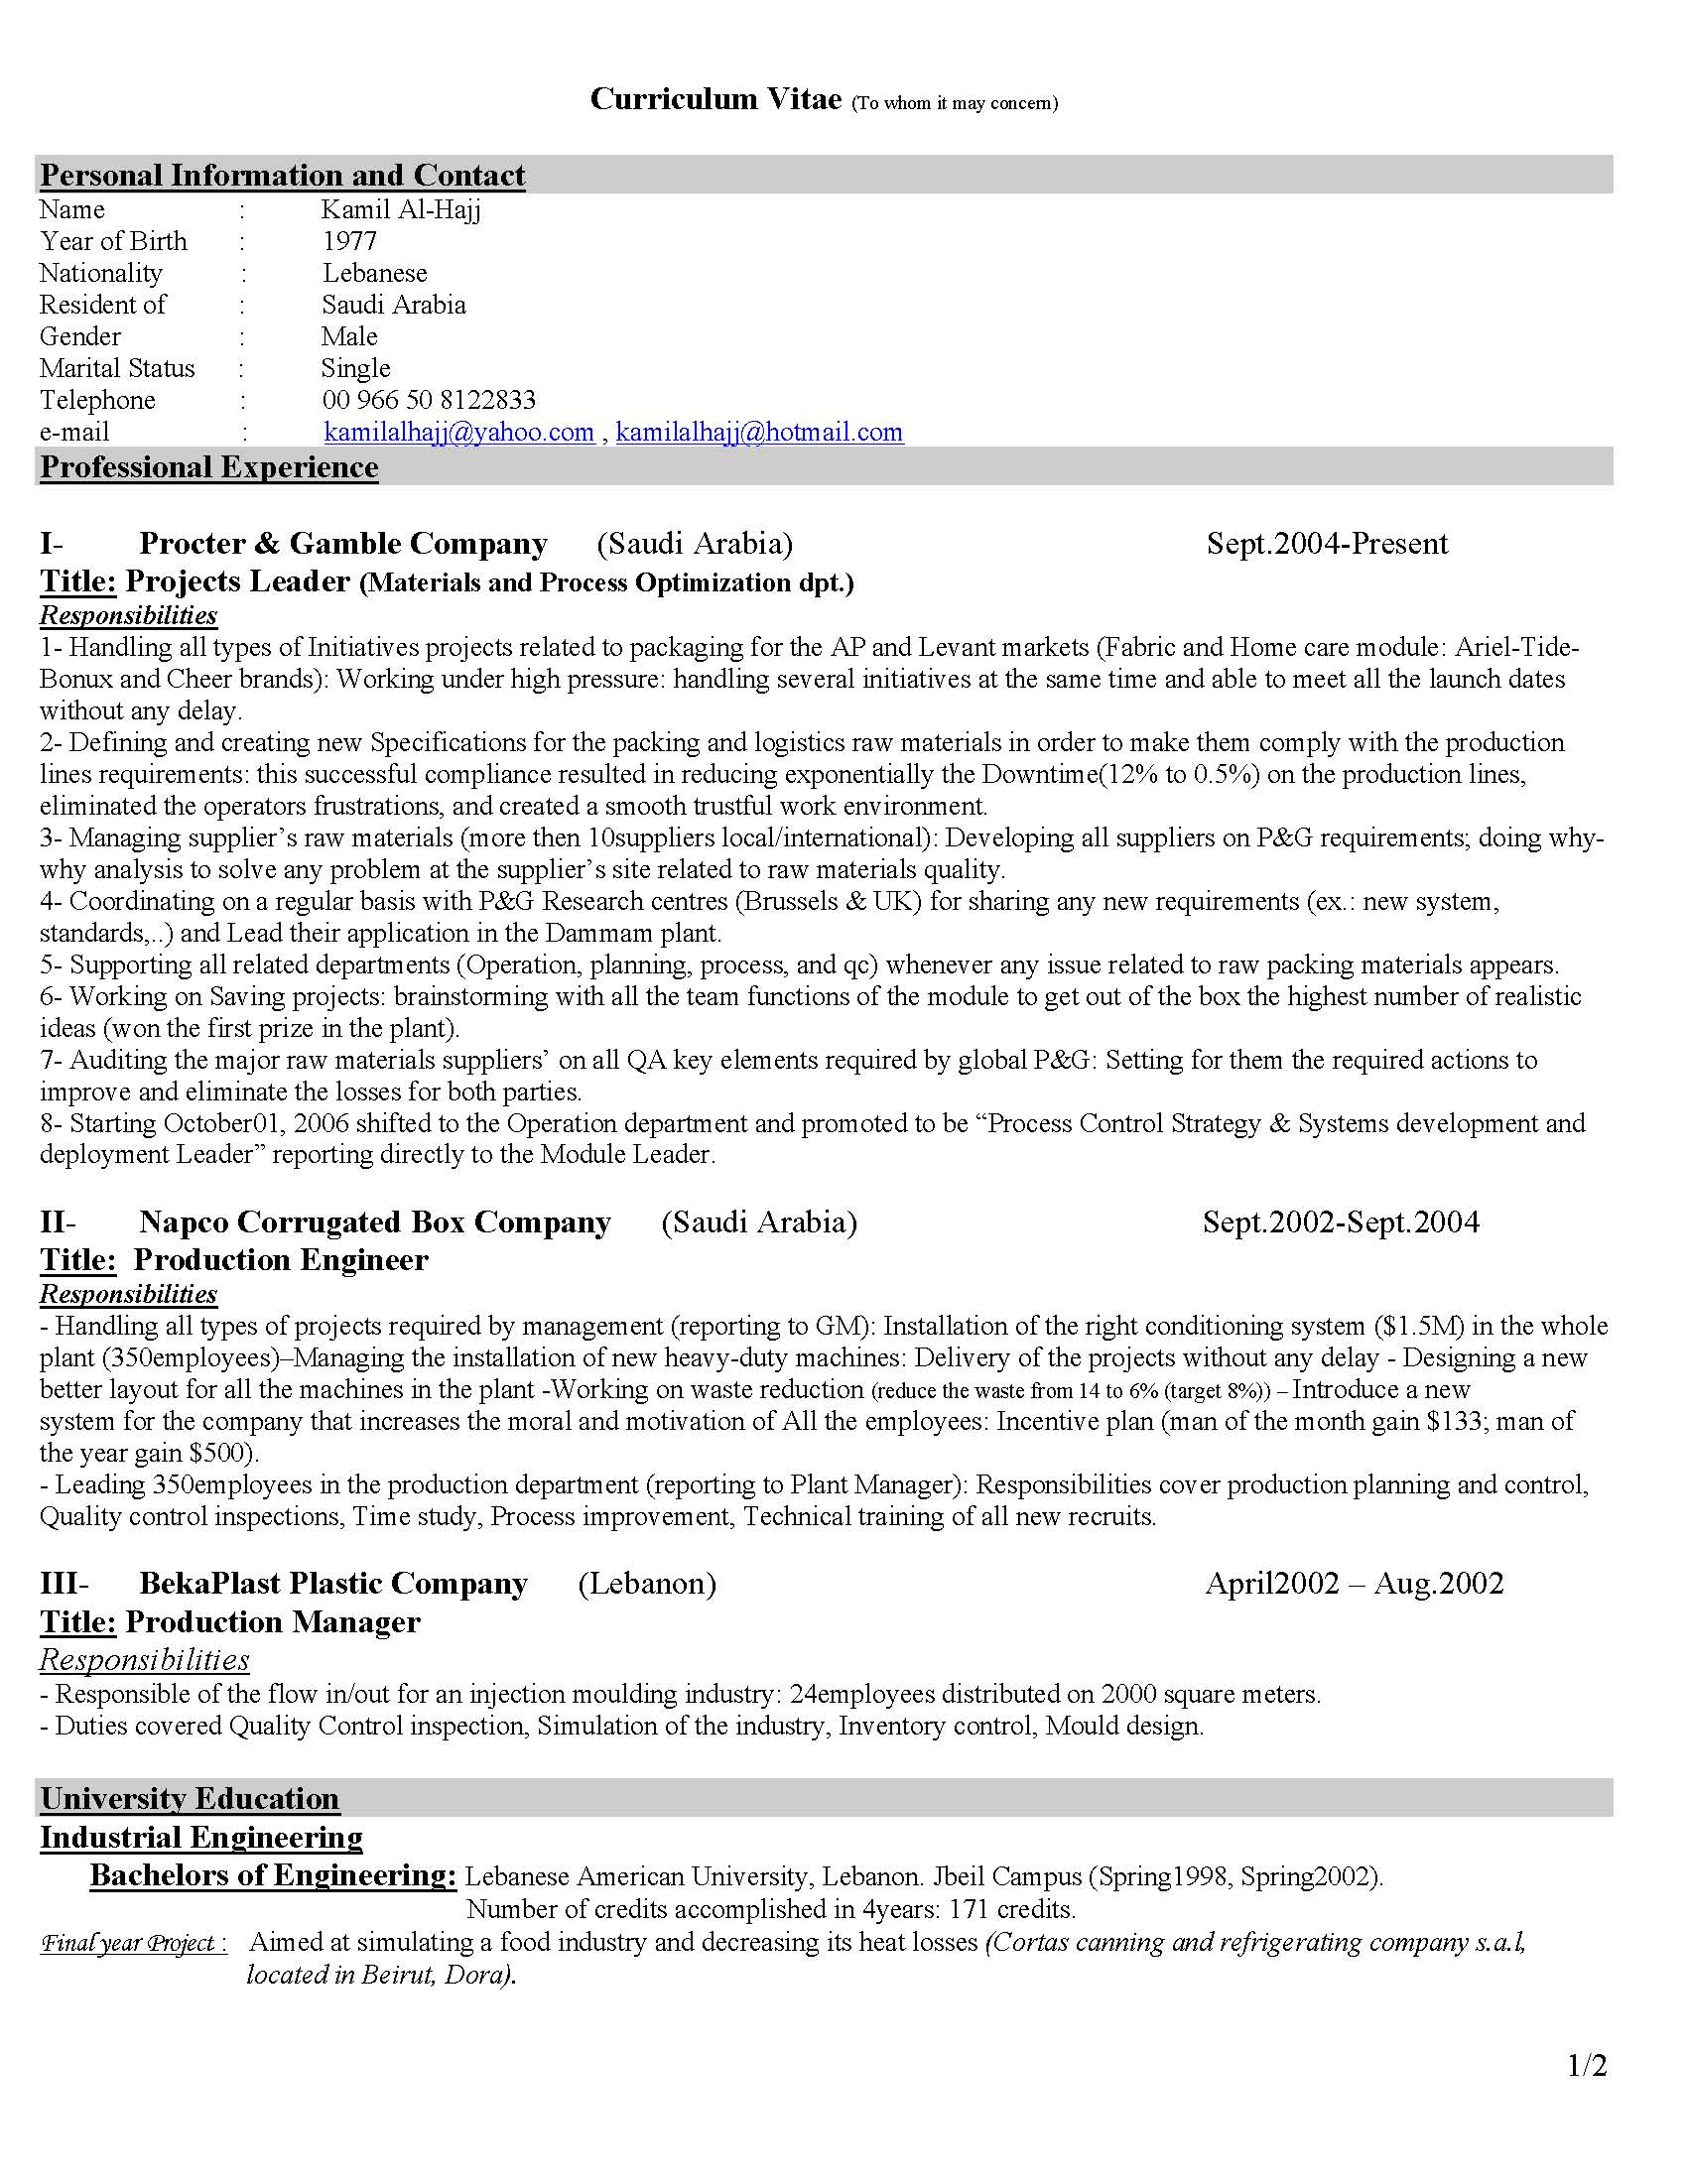 cv for industrial engineer professional resume cover letter sample cv for industrial engineer civil engineer cv sample civil engineer cv formats cv senior industrial engineer